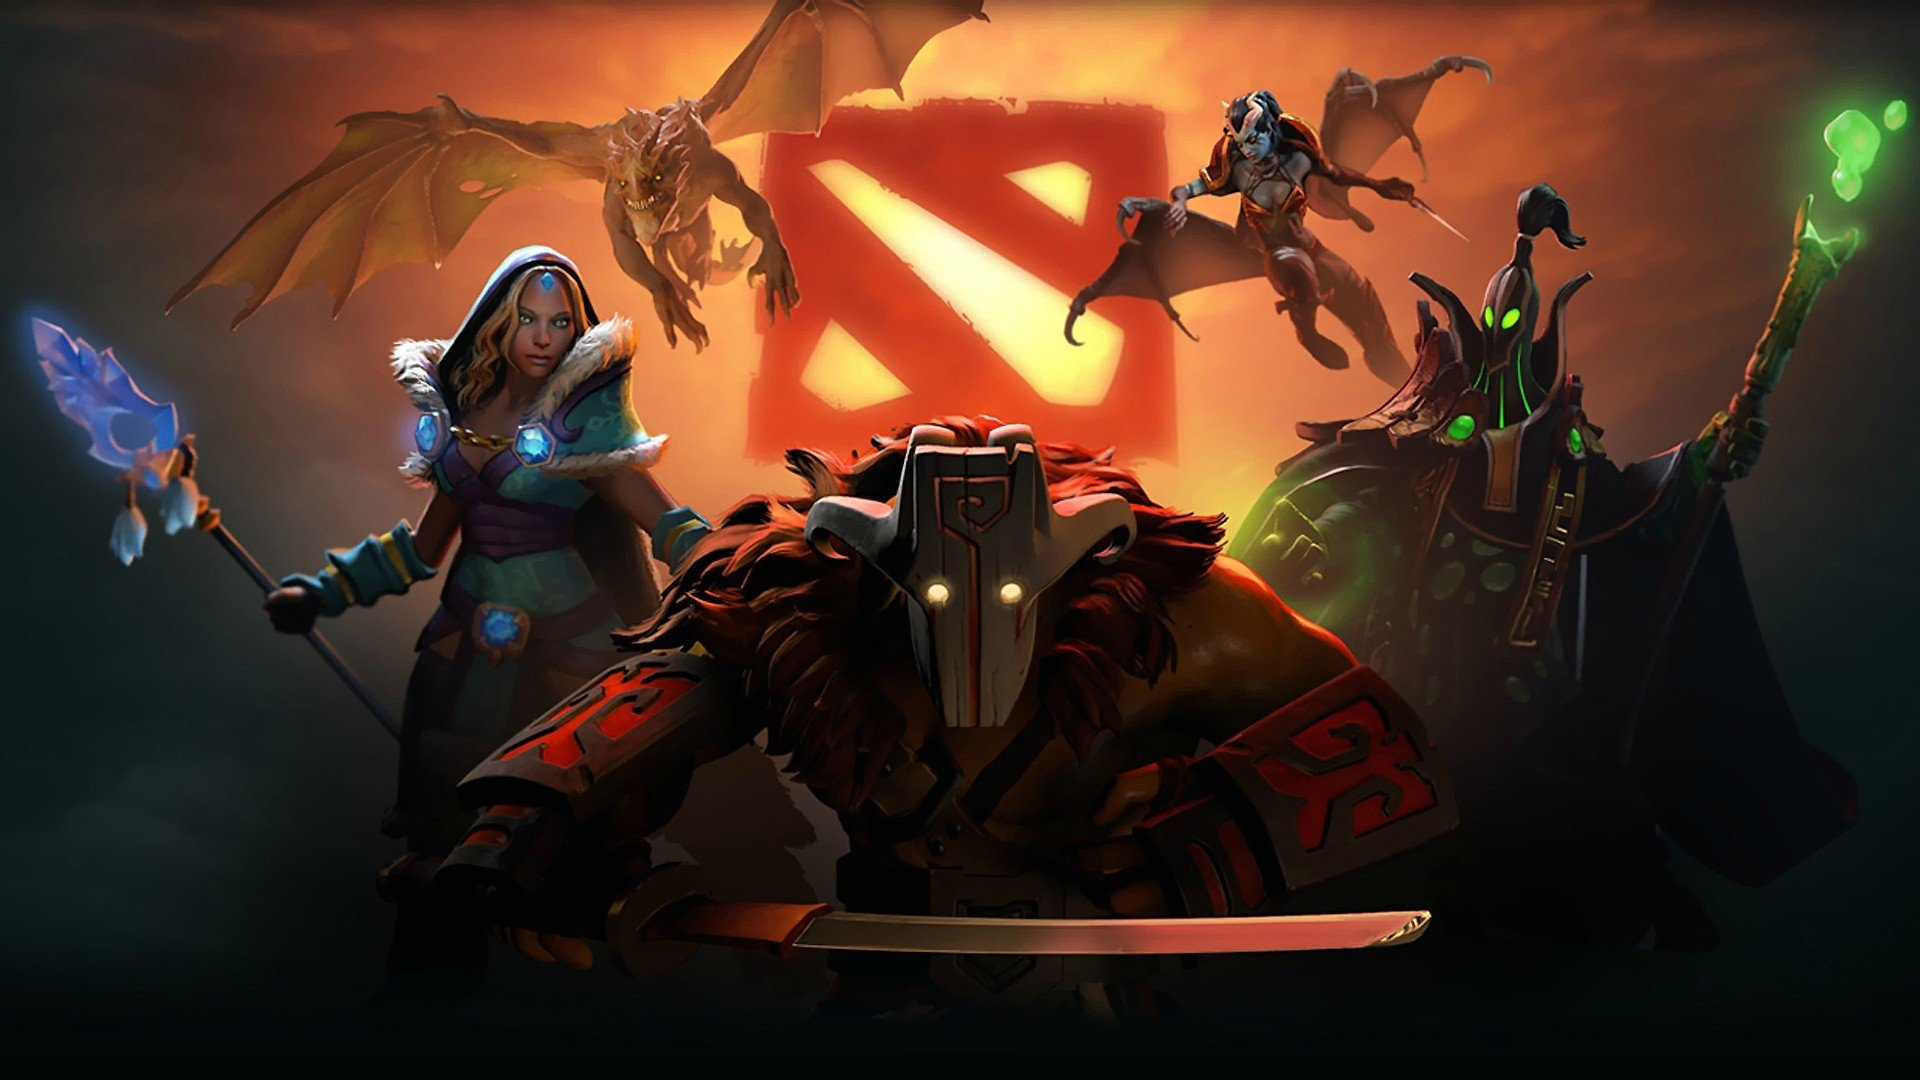 Dota 2 Wallpapers HD Download